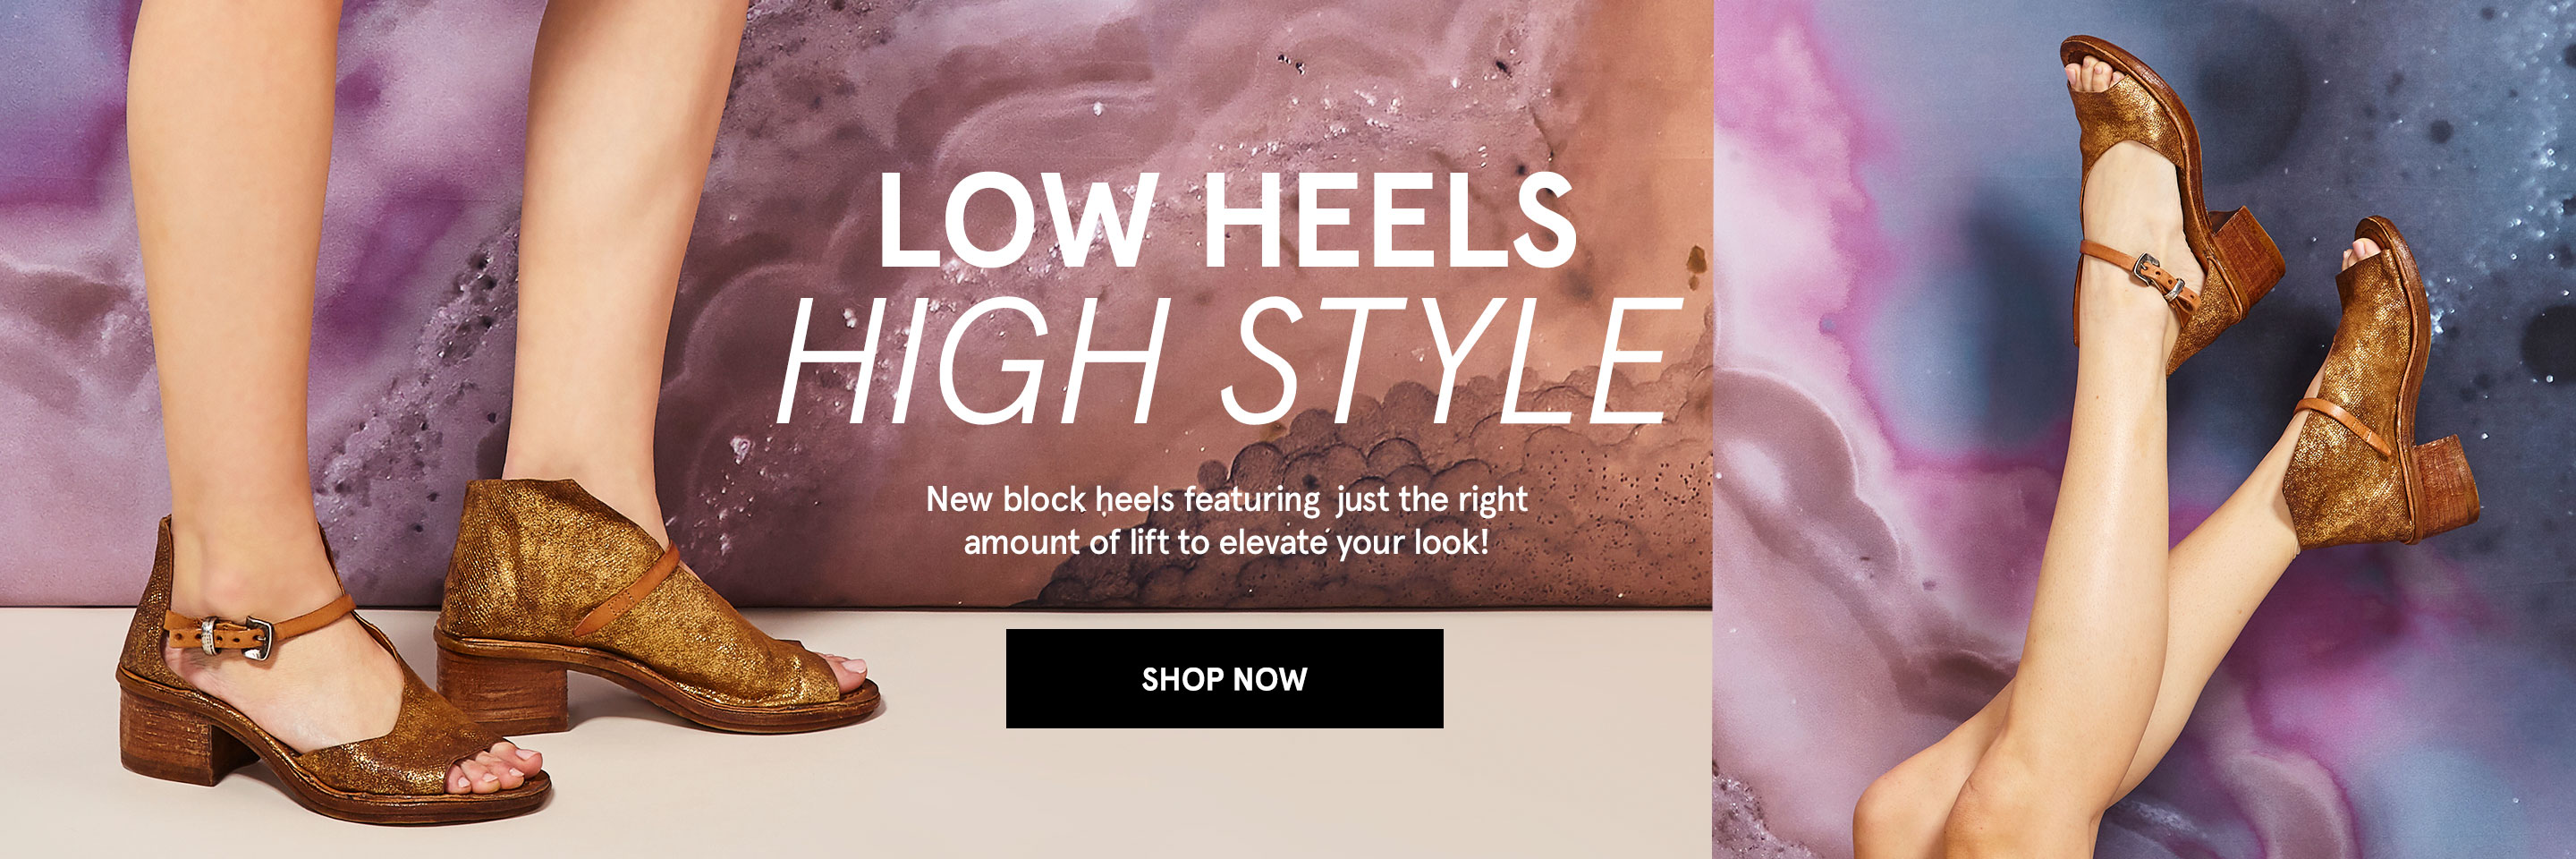 Low Heels, High Style